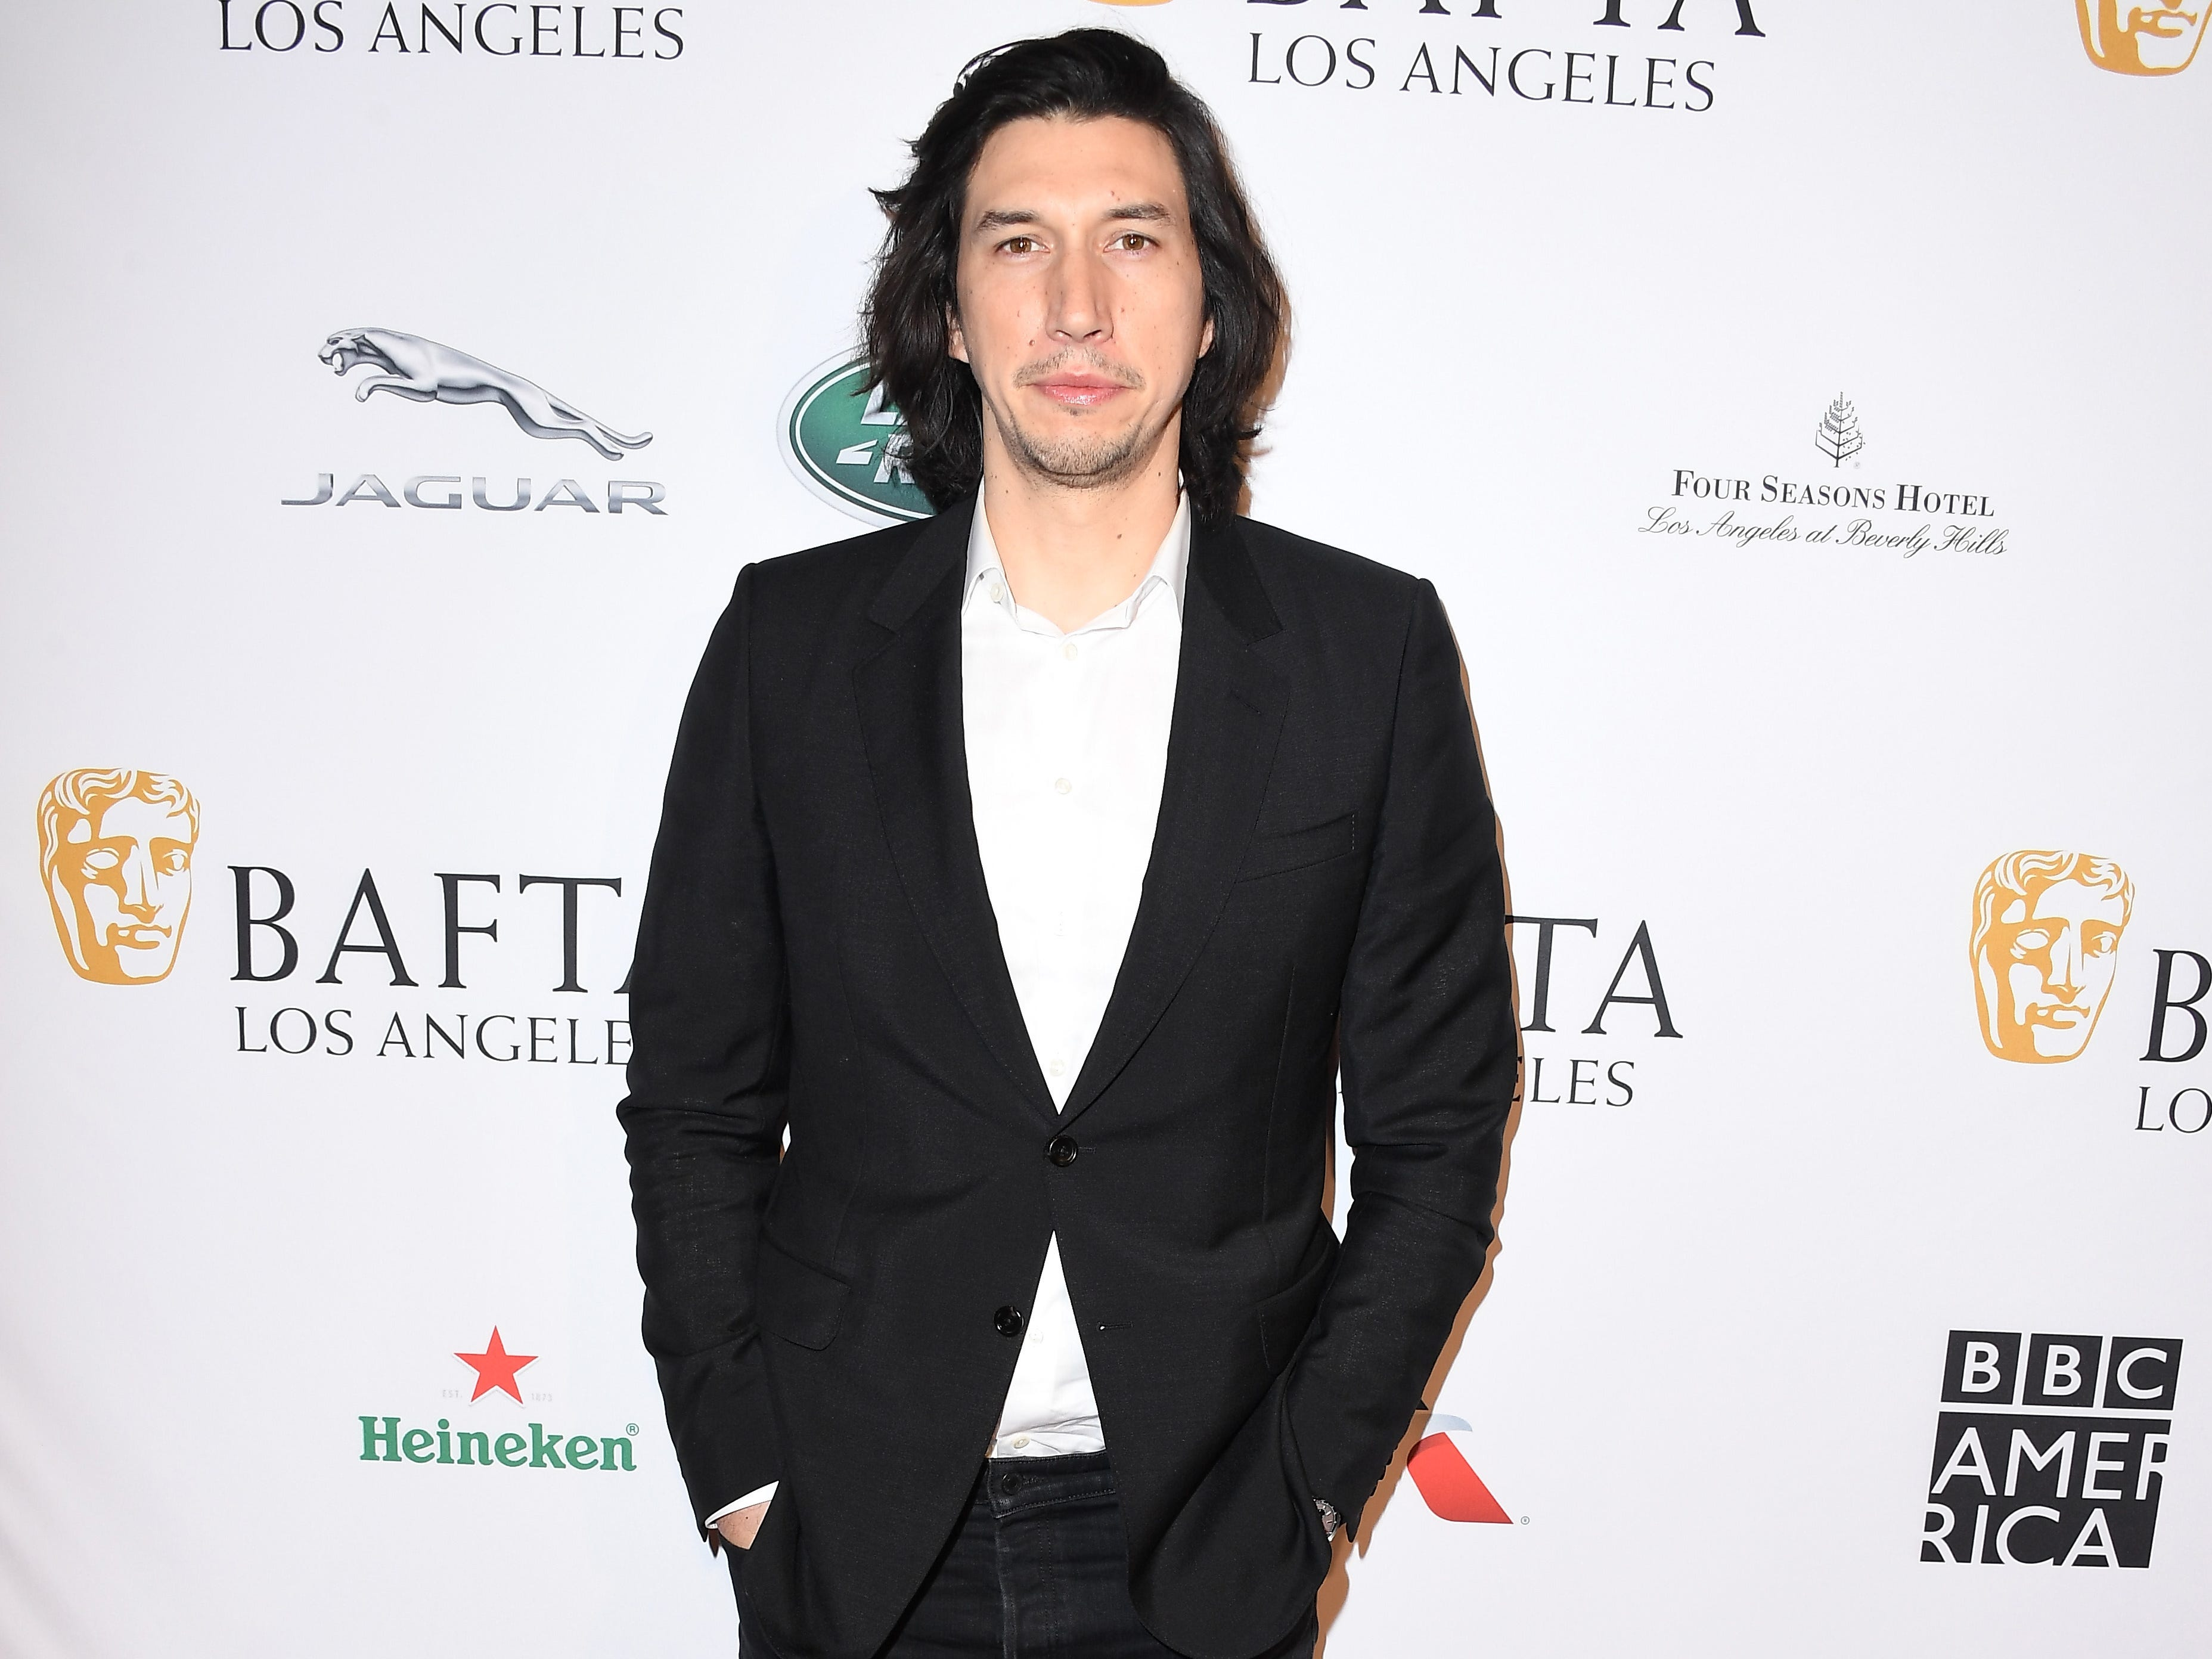 LOS ANGELES, CA - JANUARY 05:  Adam Driver attends The BAFTA Los Angeles Tea Party at Four Seasons Hotel Los Angeles at Beverly Hills on January 5, 2019 in Los Angeles, California.  (Photo by Steve Granitz/WireImage) ORG XMIT: 775261683 ORIG FILE ID: 1077929358